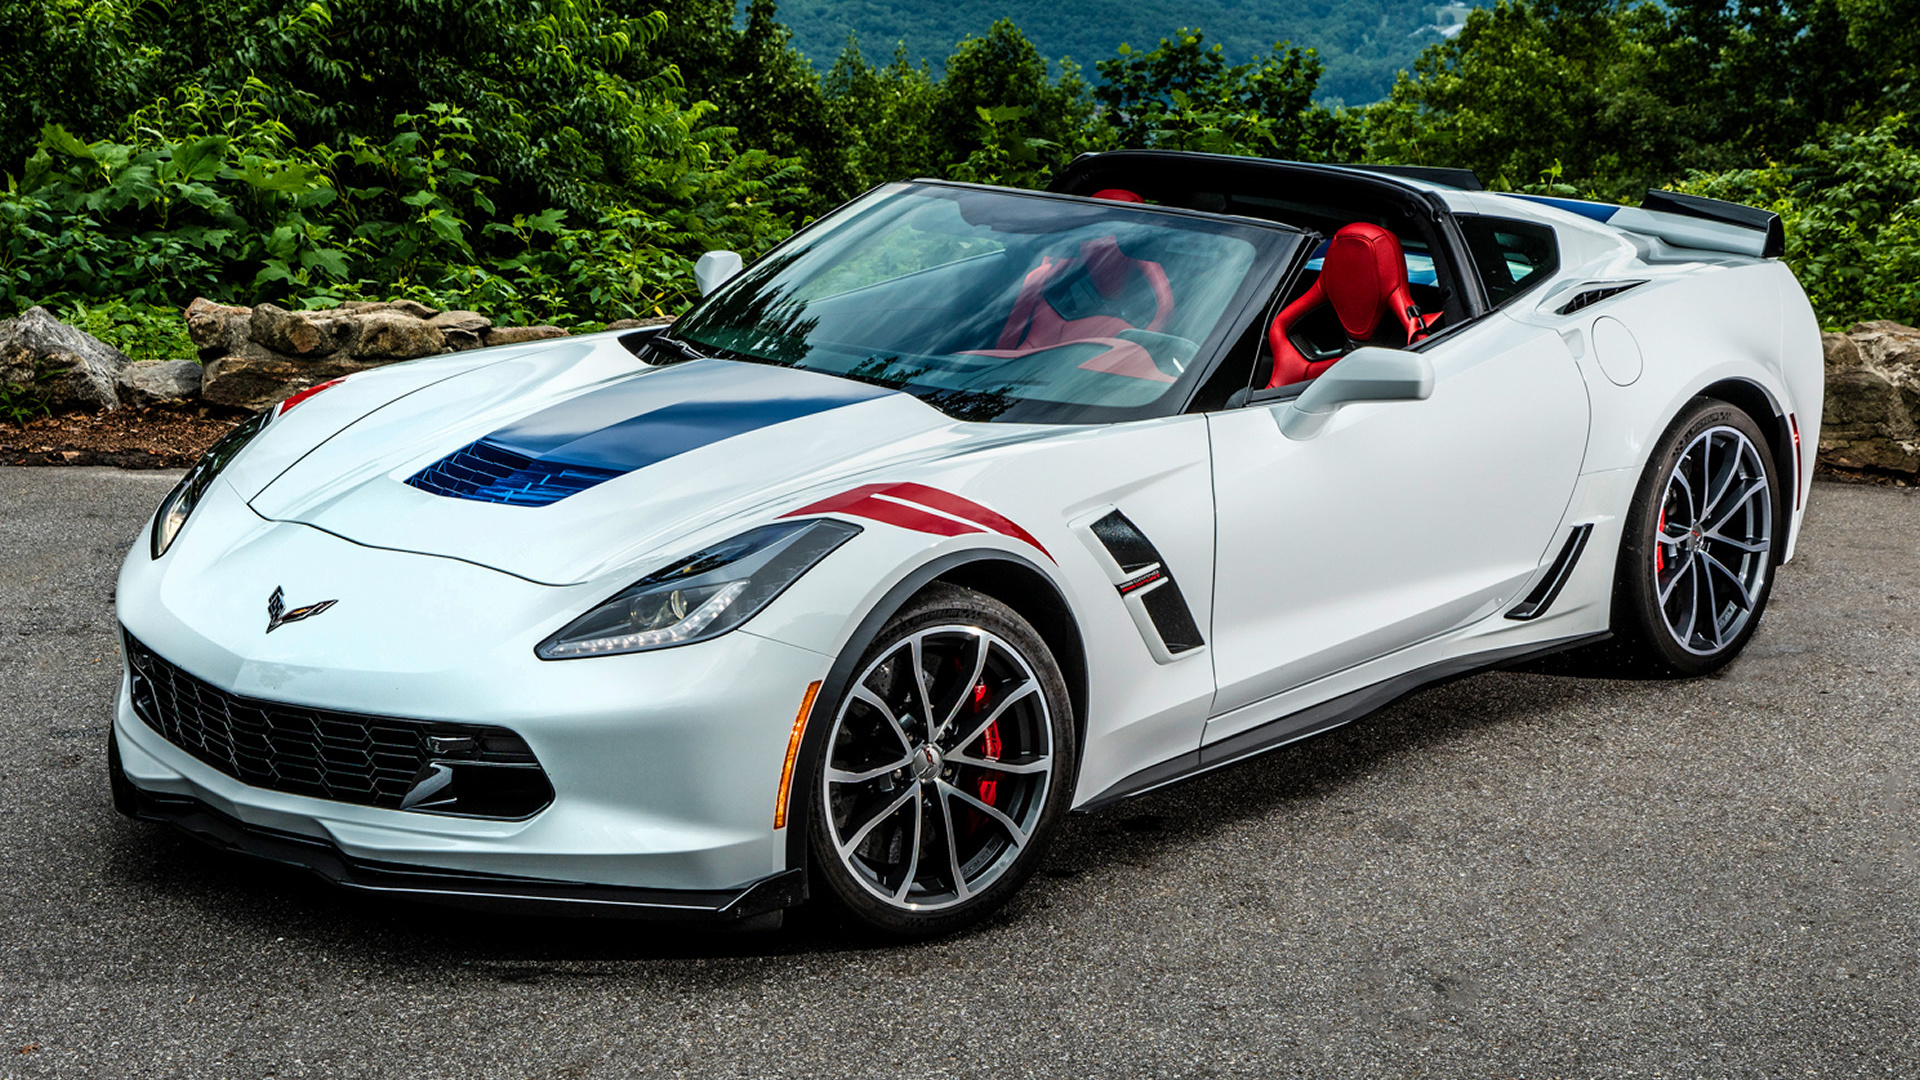 Chevrolet corvette grand sport 2017 wallpapers and hd